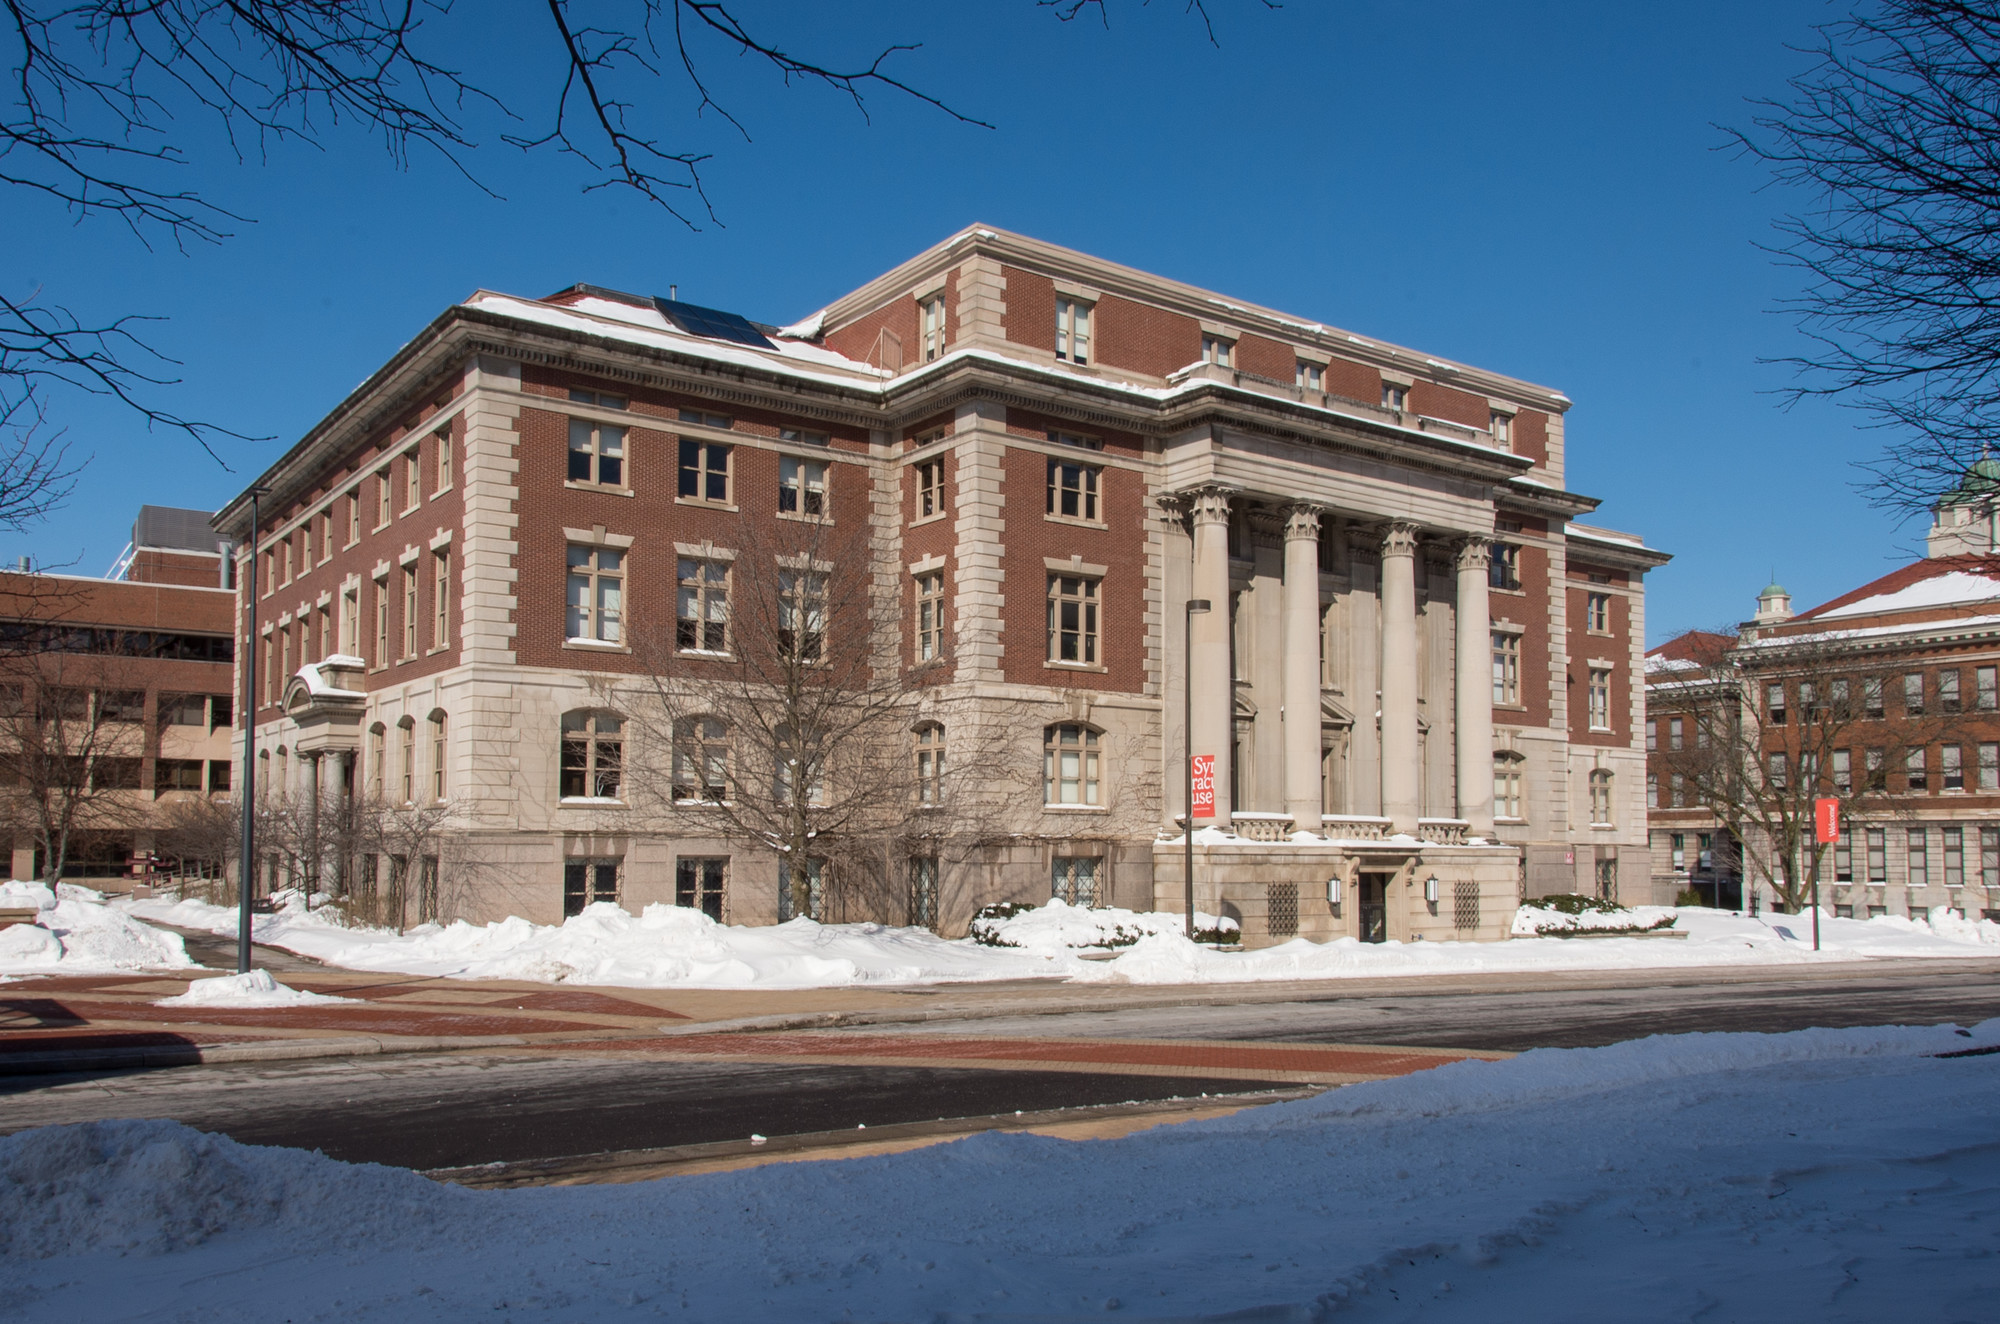 Slocum Hall Exterior, March 2017, Image by Stephen F Sartori